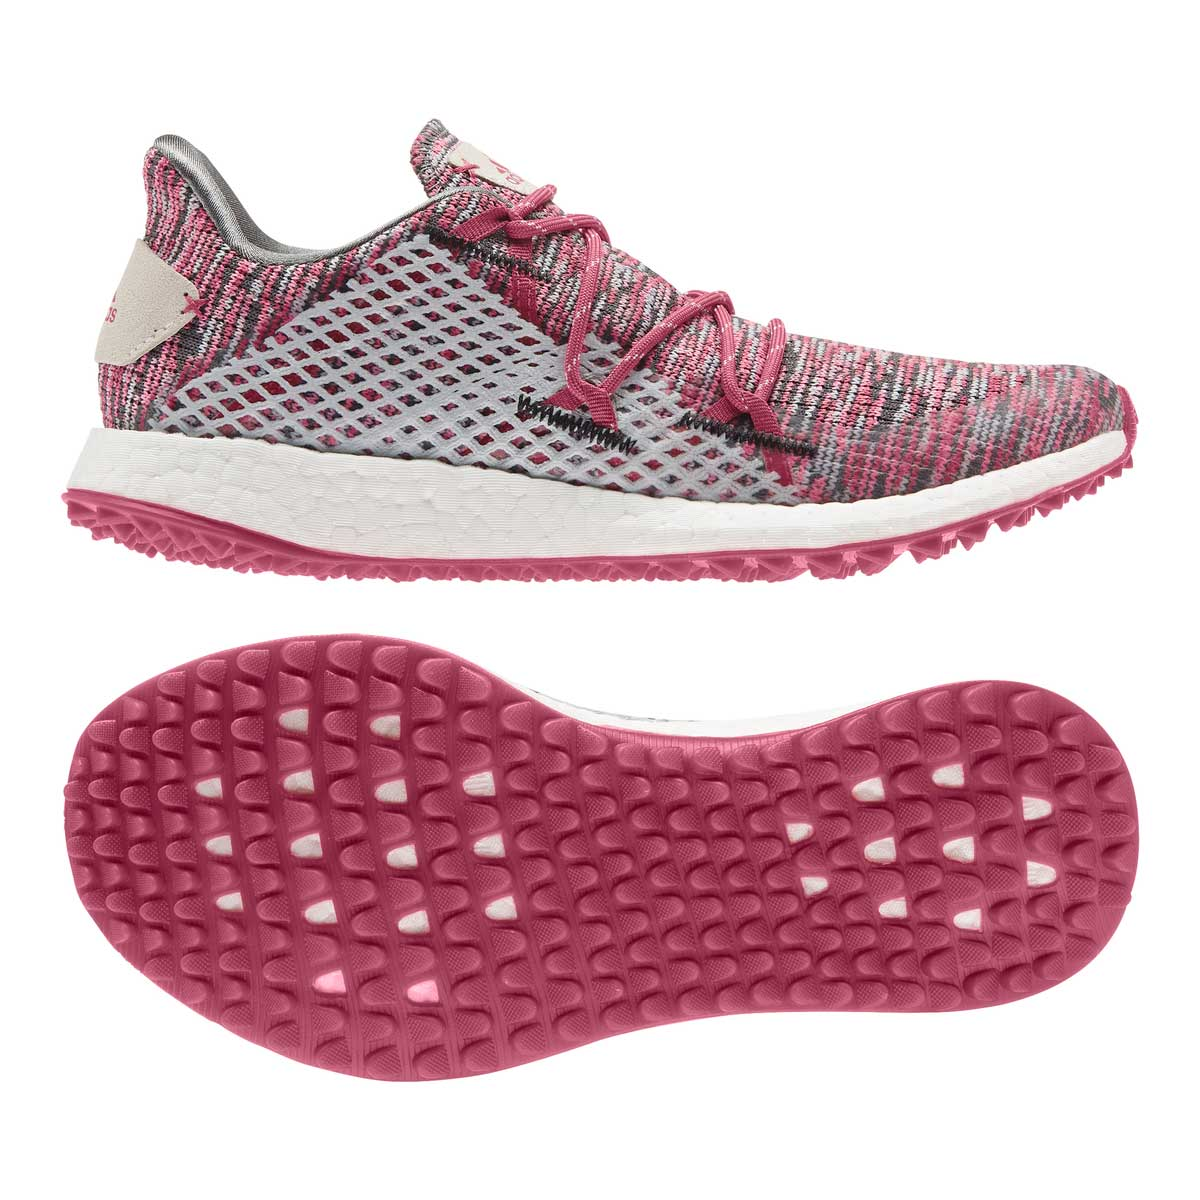 Adidas Women's Crossknit DPR Grey/Wild Pink Spikeless Golf Shoe